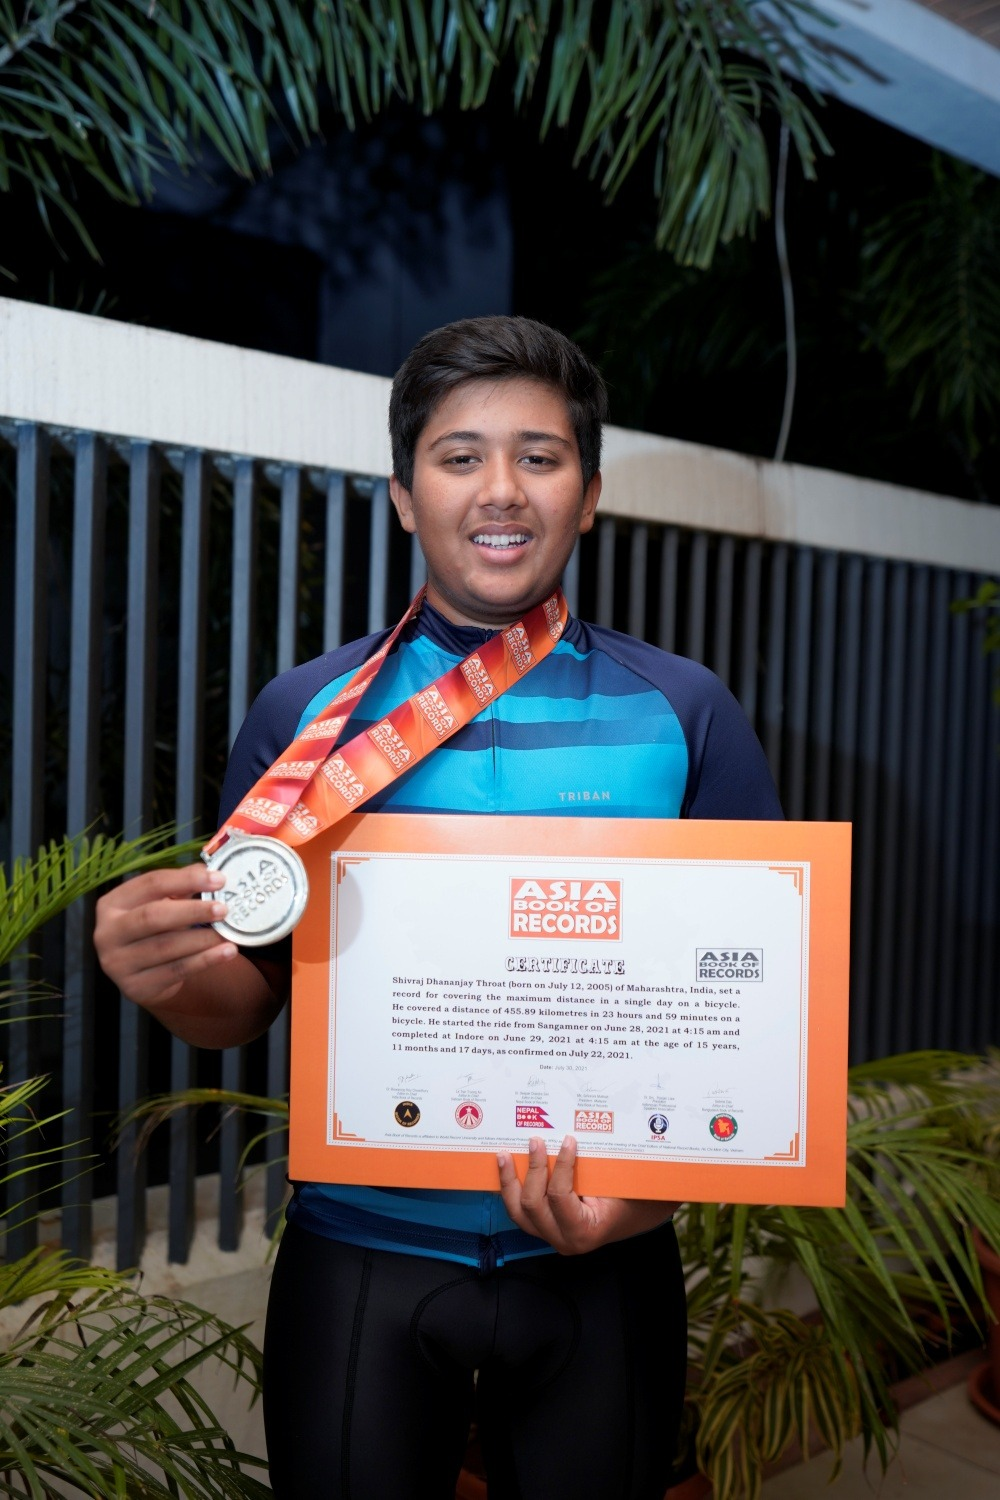 Shivraj Thorat with his Asia Book of Records certificate